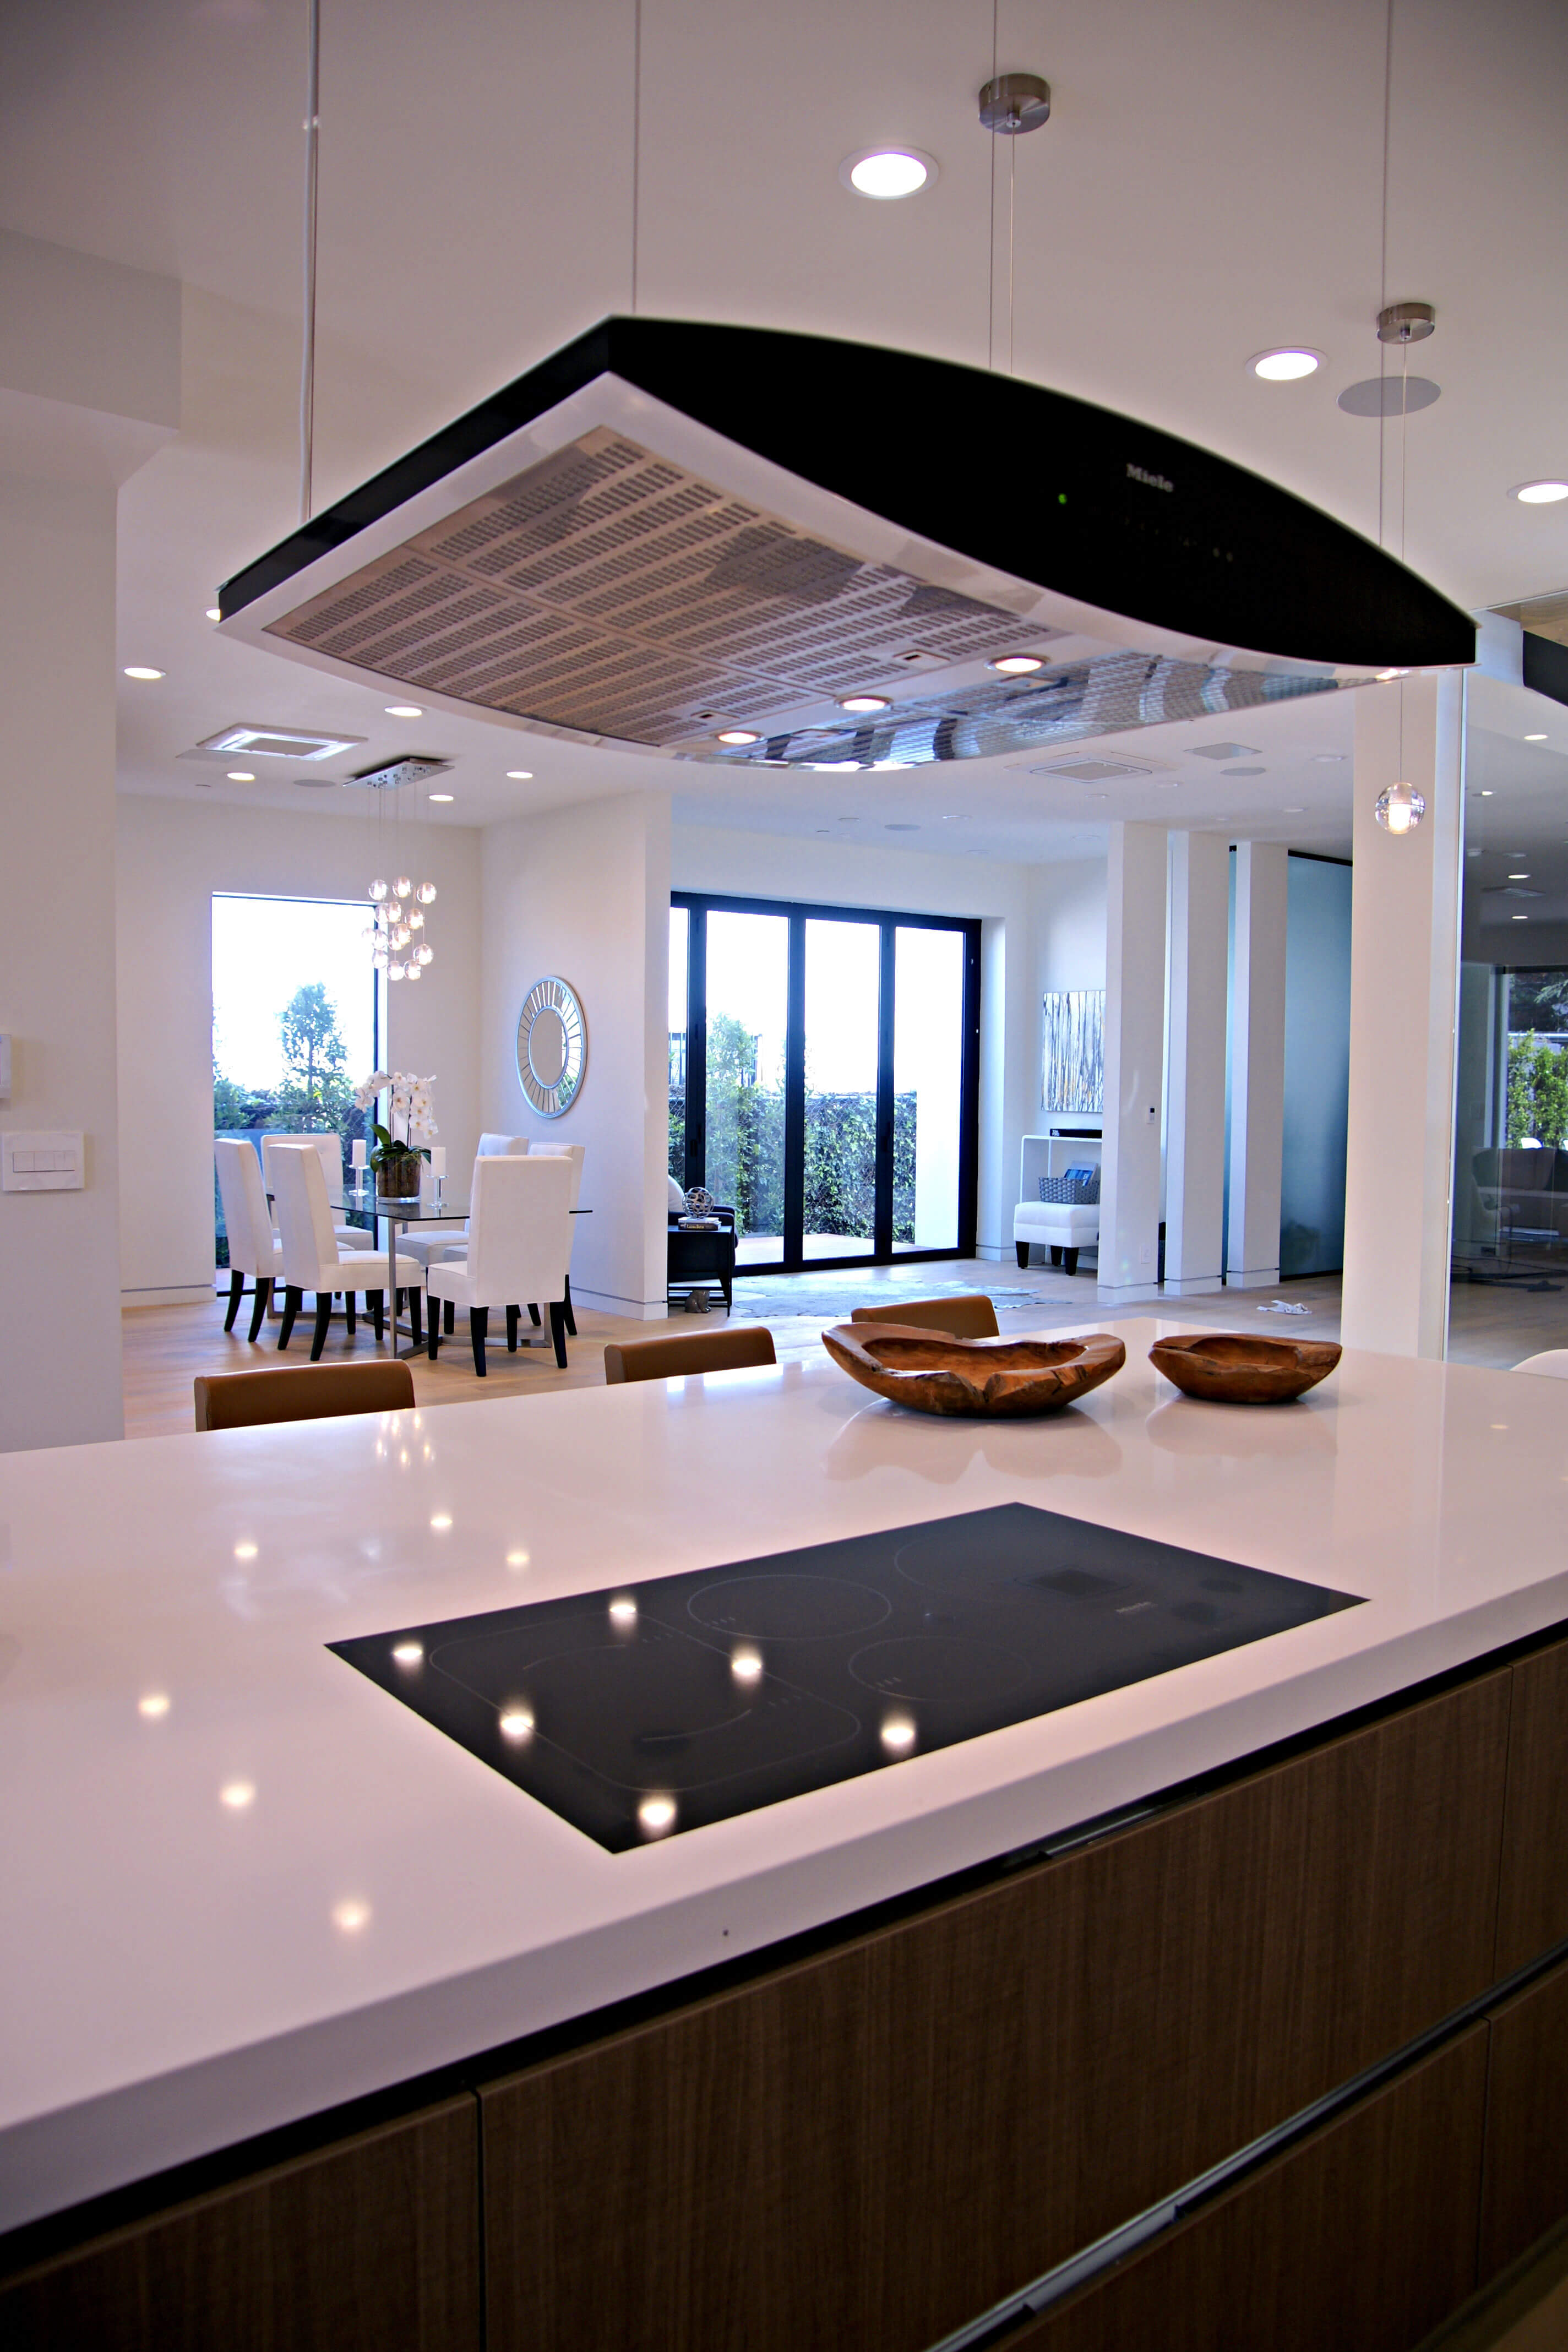 European kitchen cabinets | Euro style cabinetry by design ...